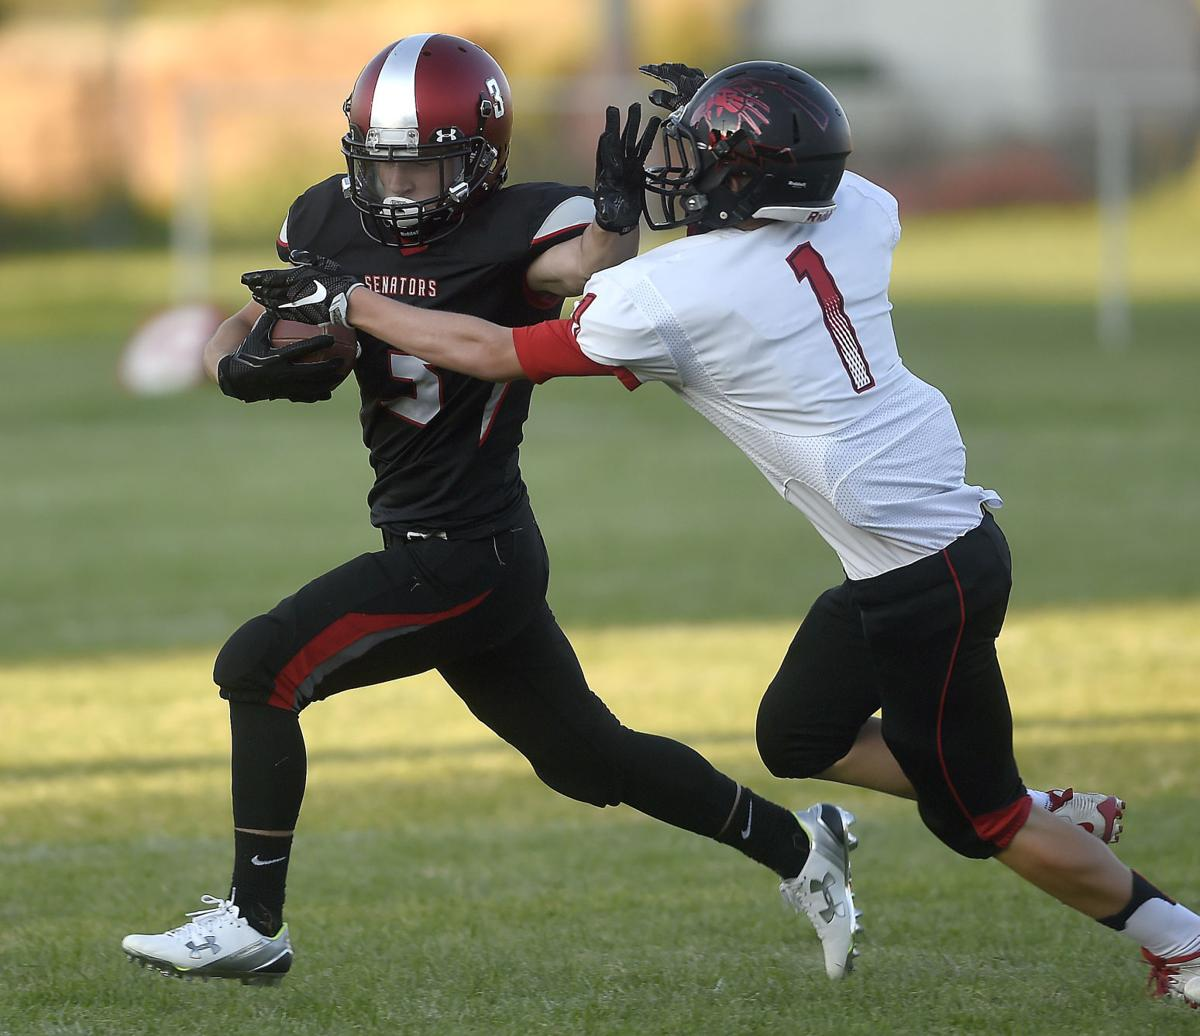 Football - South Fremont Vs. Gooding